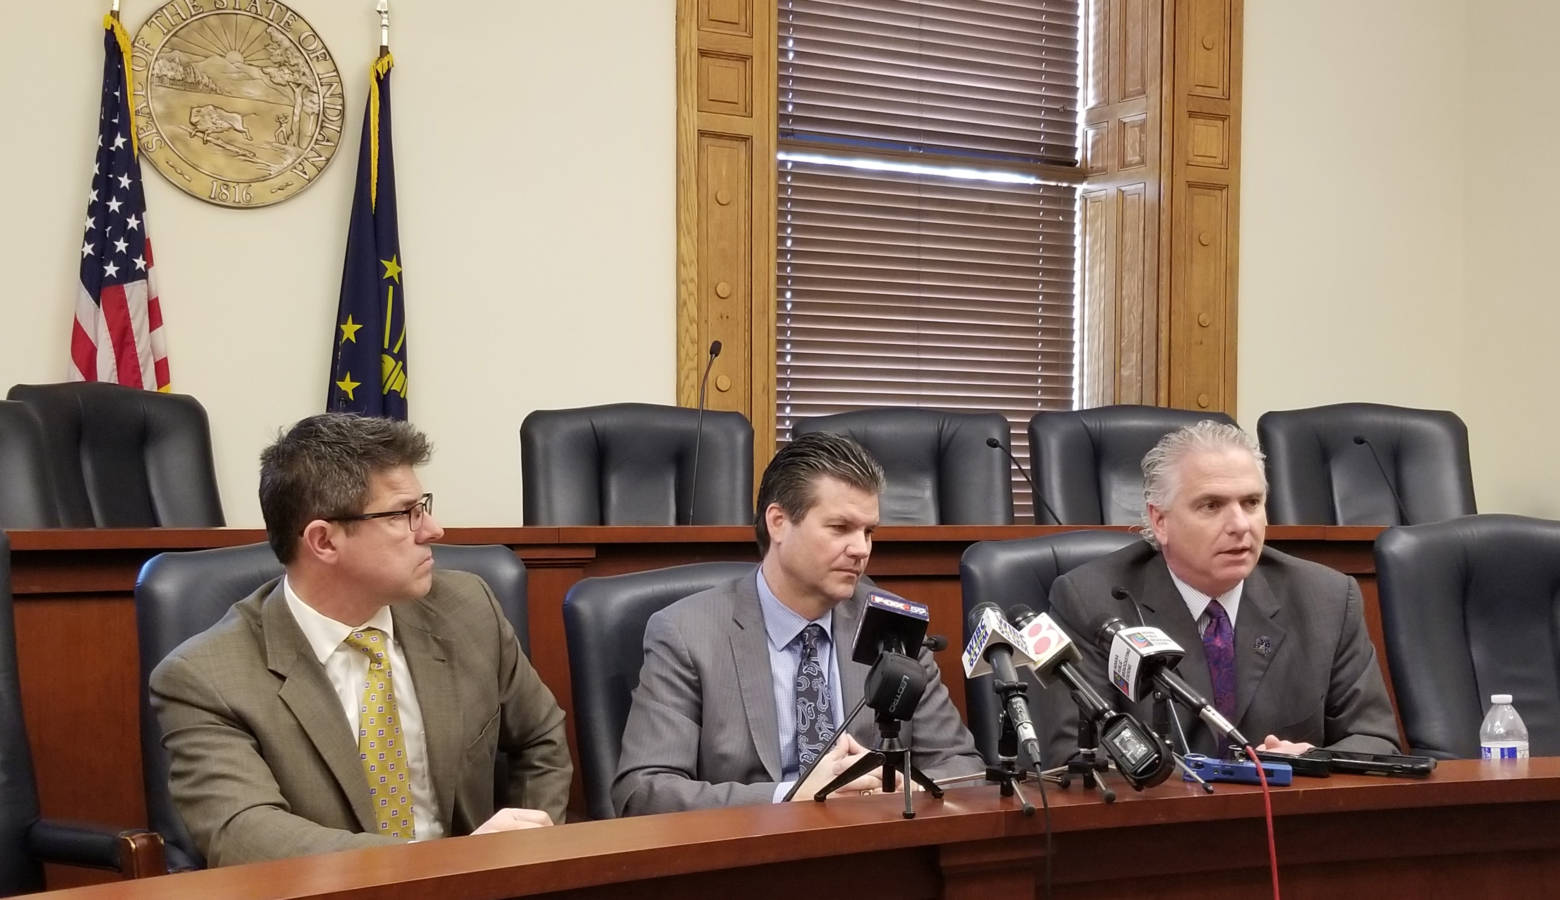 Sens. Rod Bray, Ryan Mishler and Eric Bassler announced the Senate GOP budget proposal Thursday. (Jeanie Lindsay/IPB News)